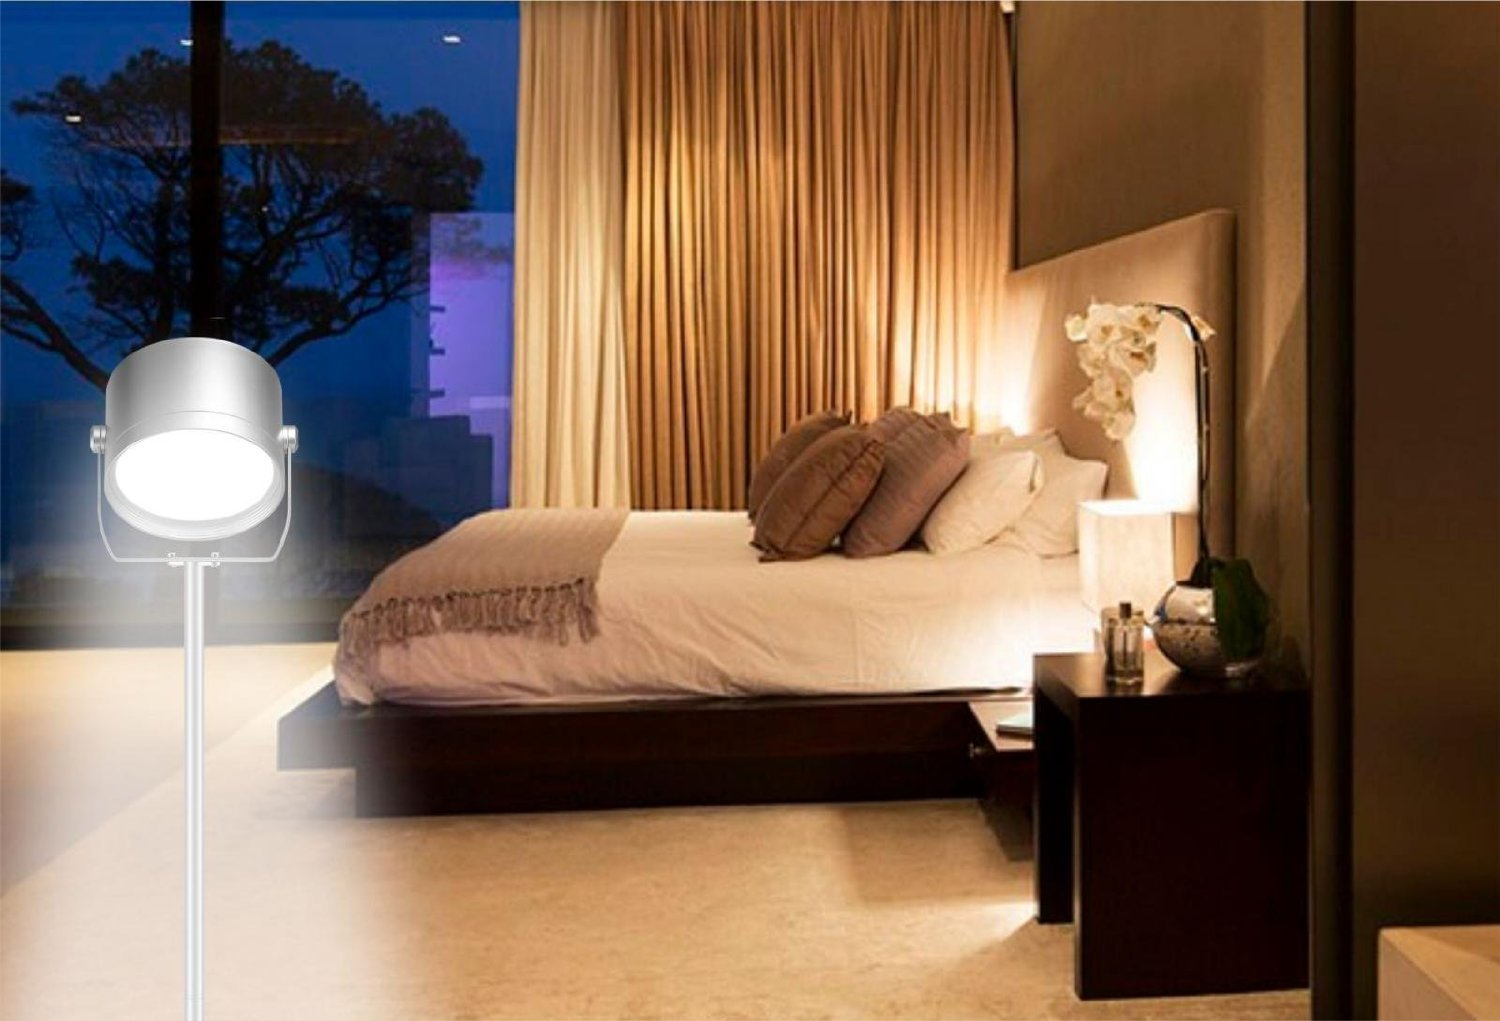 Living Room Bedroom Oxyled Oxyread F10 Remote Control Led Floor Lamp For Living Room